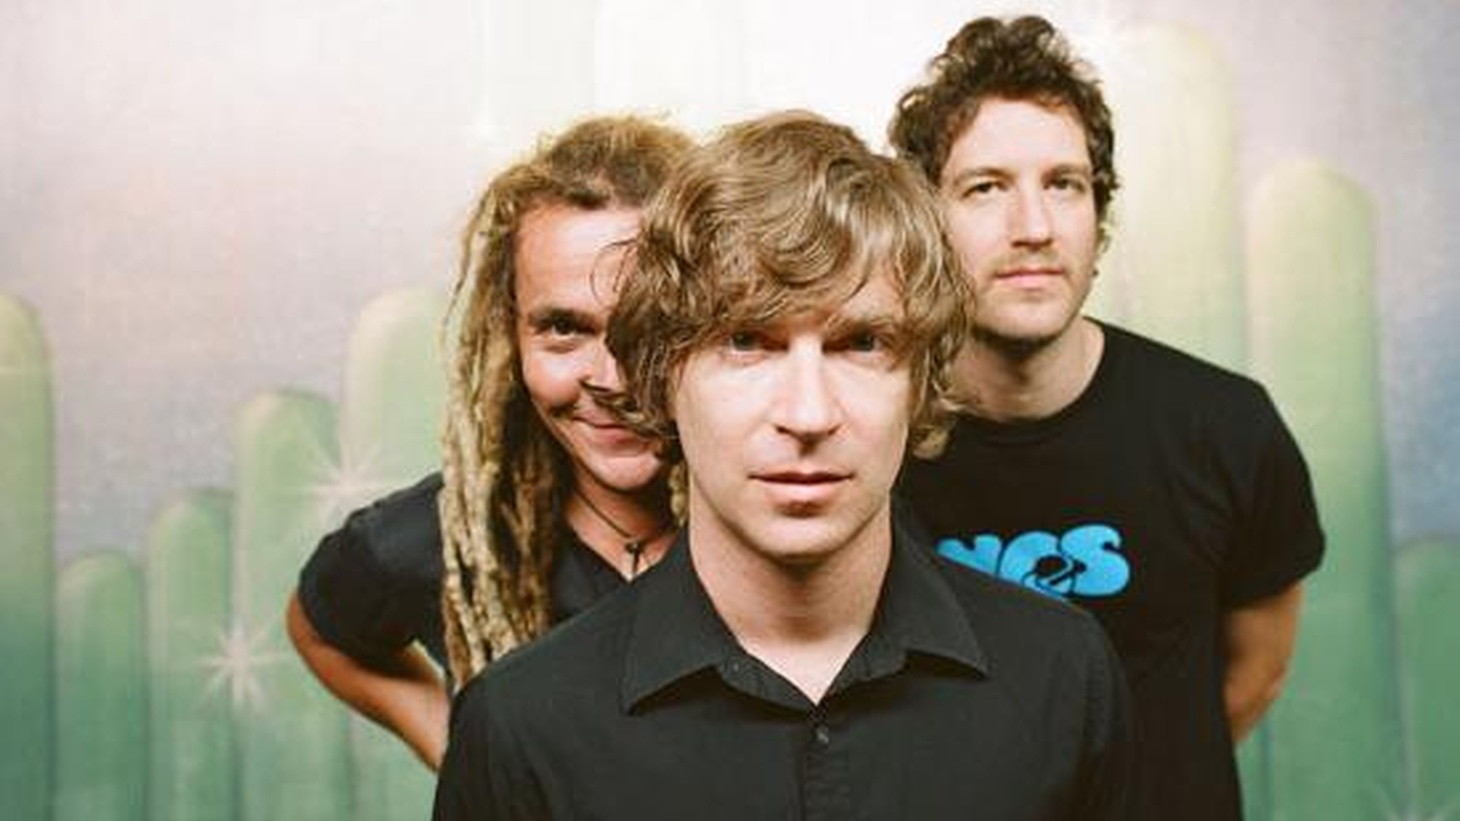 Indie trio Nada Surf took on their favorite songs by other artists for their new album, dedicated entirely to covers. We'll hear what makes these songs special when they join us for a live session on Morning Becomes Eclectic at 11:15am.